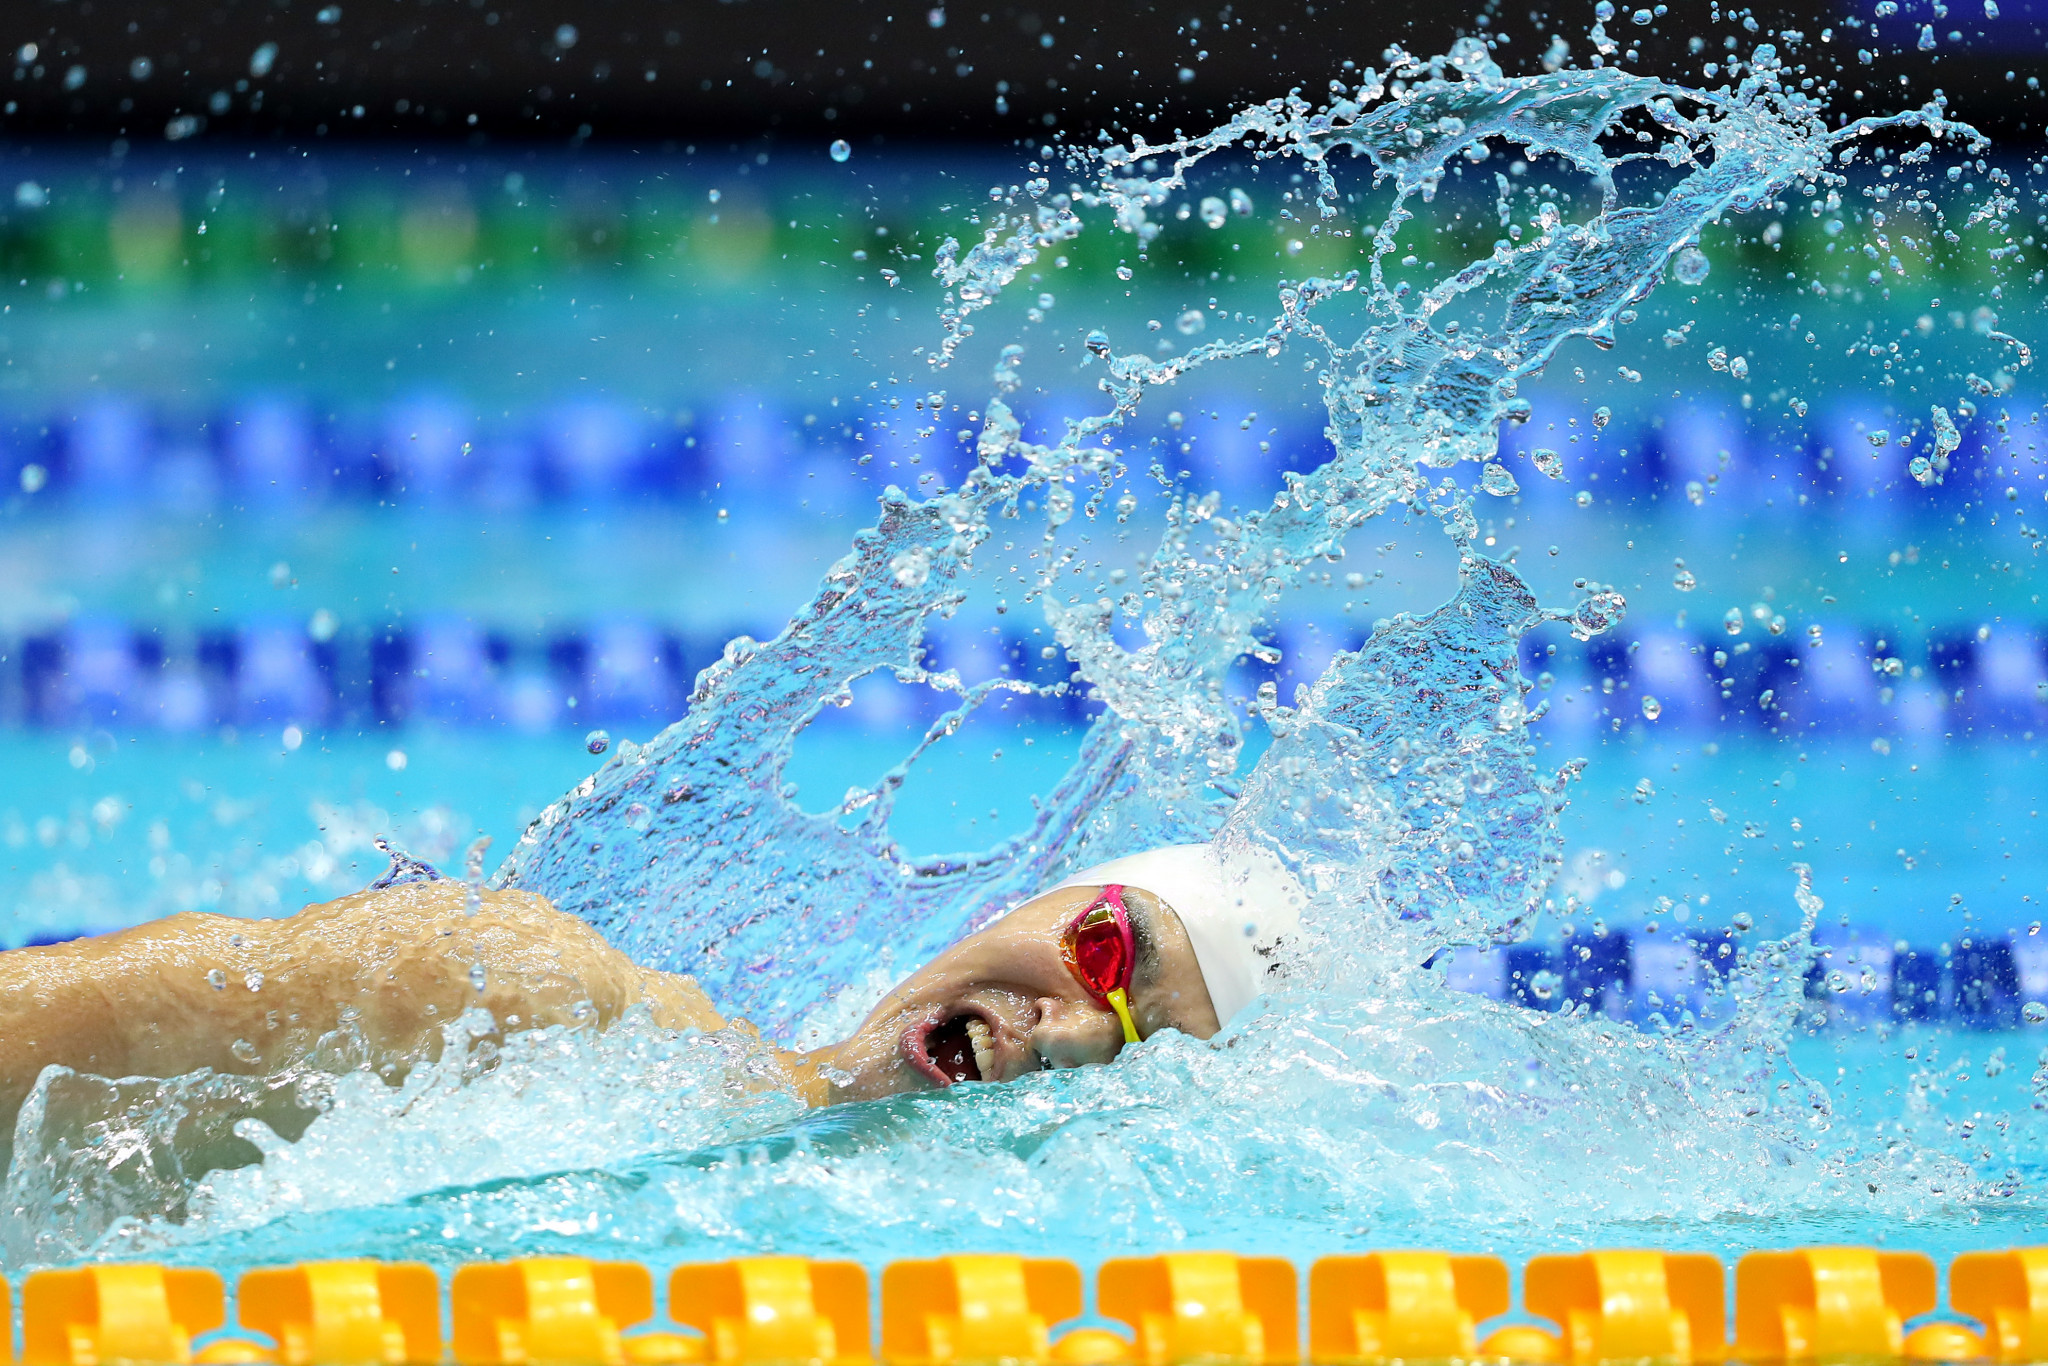 Sun Yang will give testimony during the public CAS hearing ©Getty Images